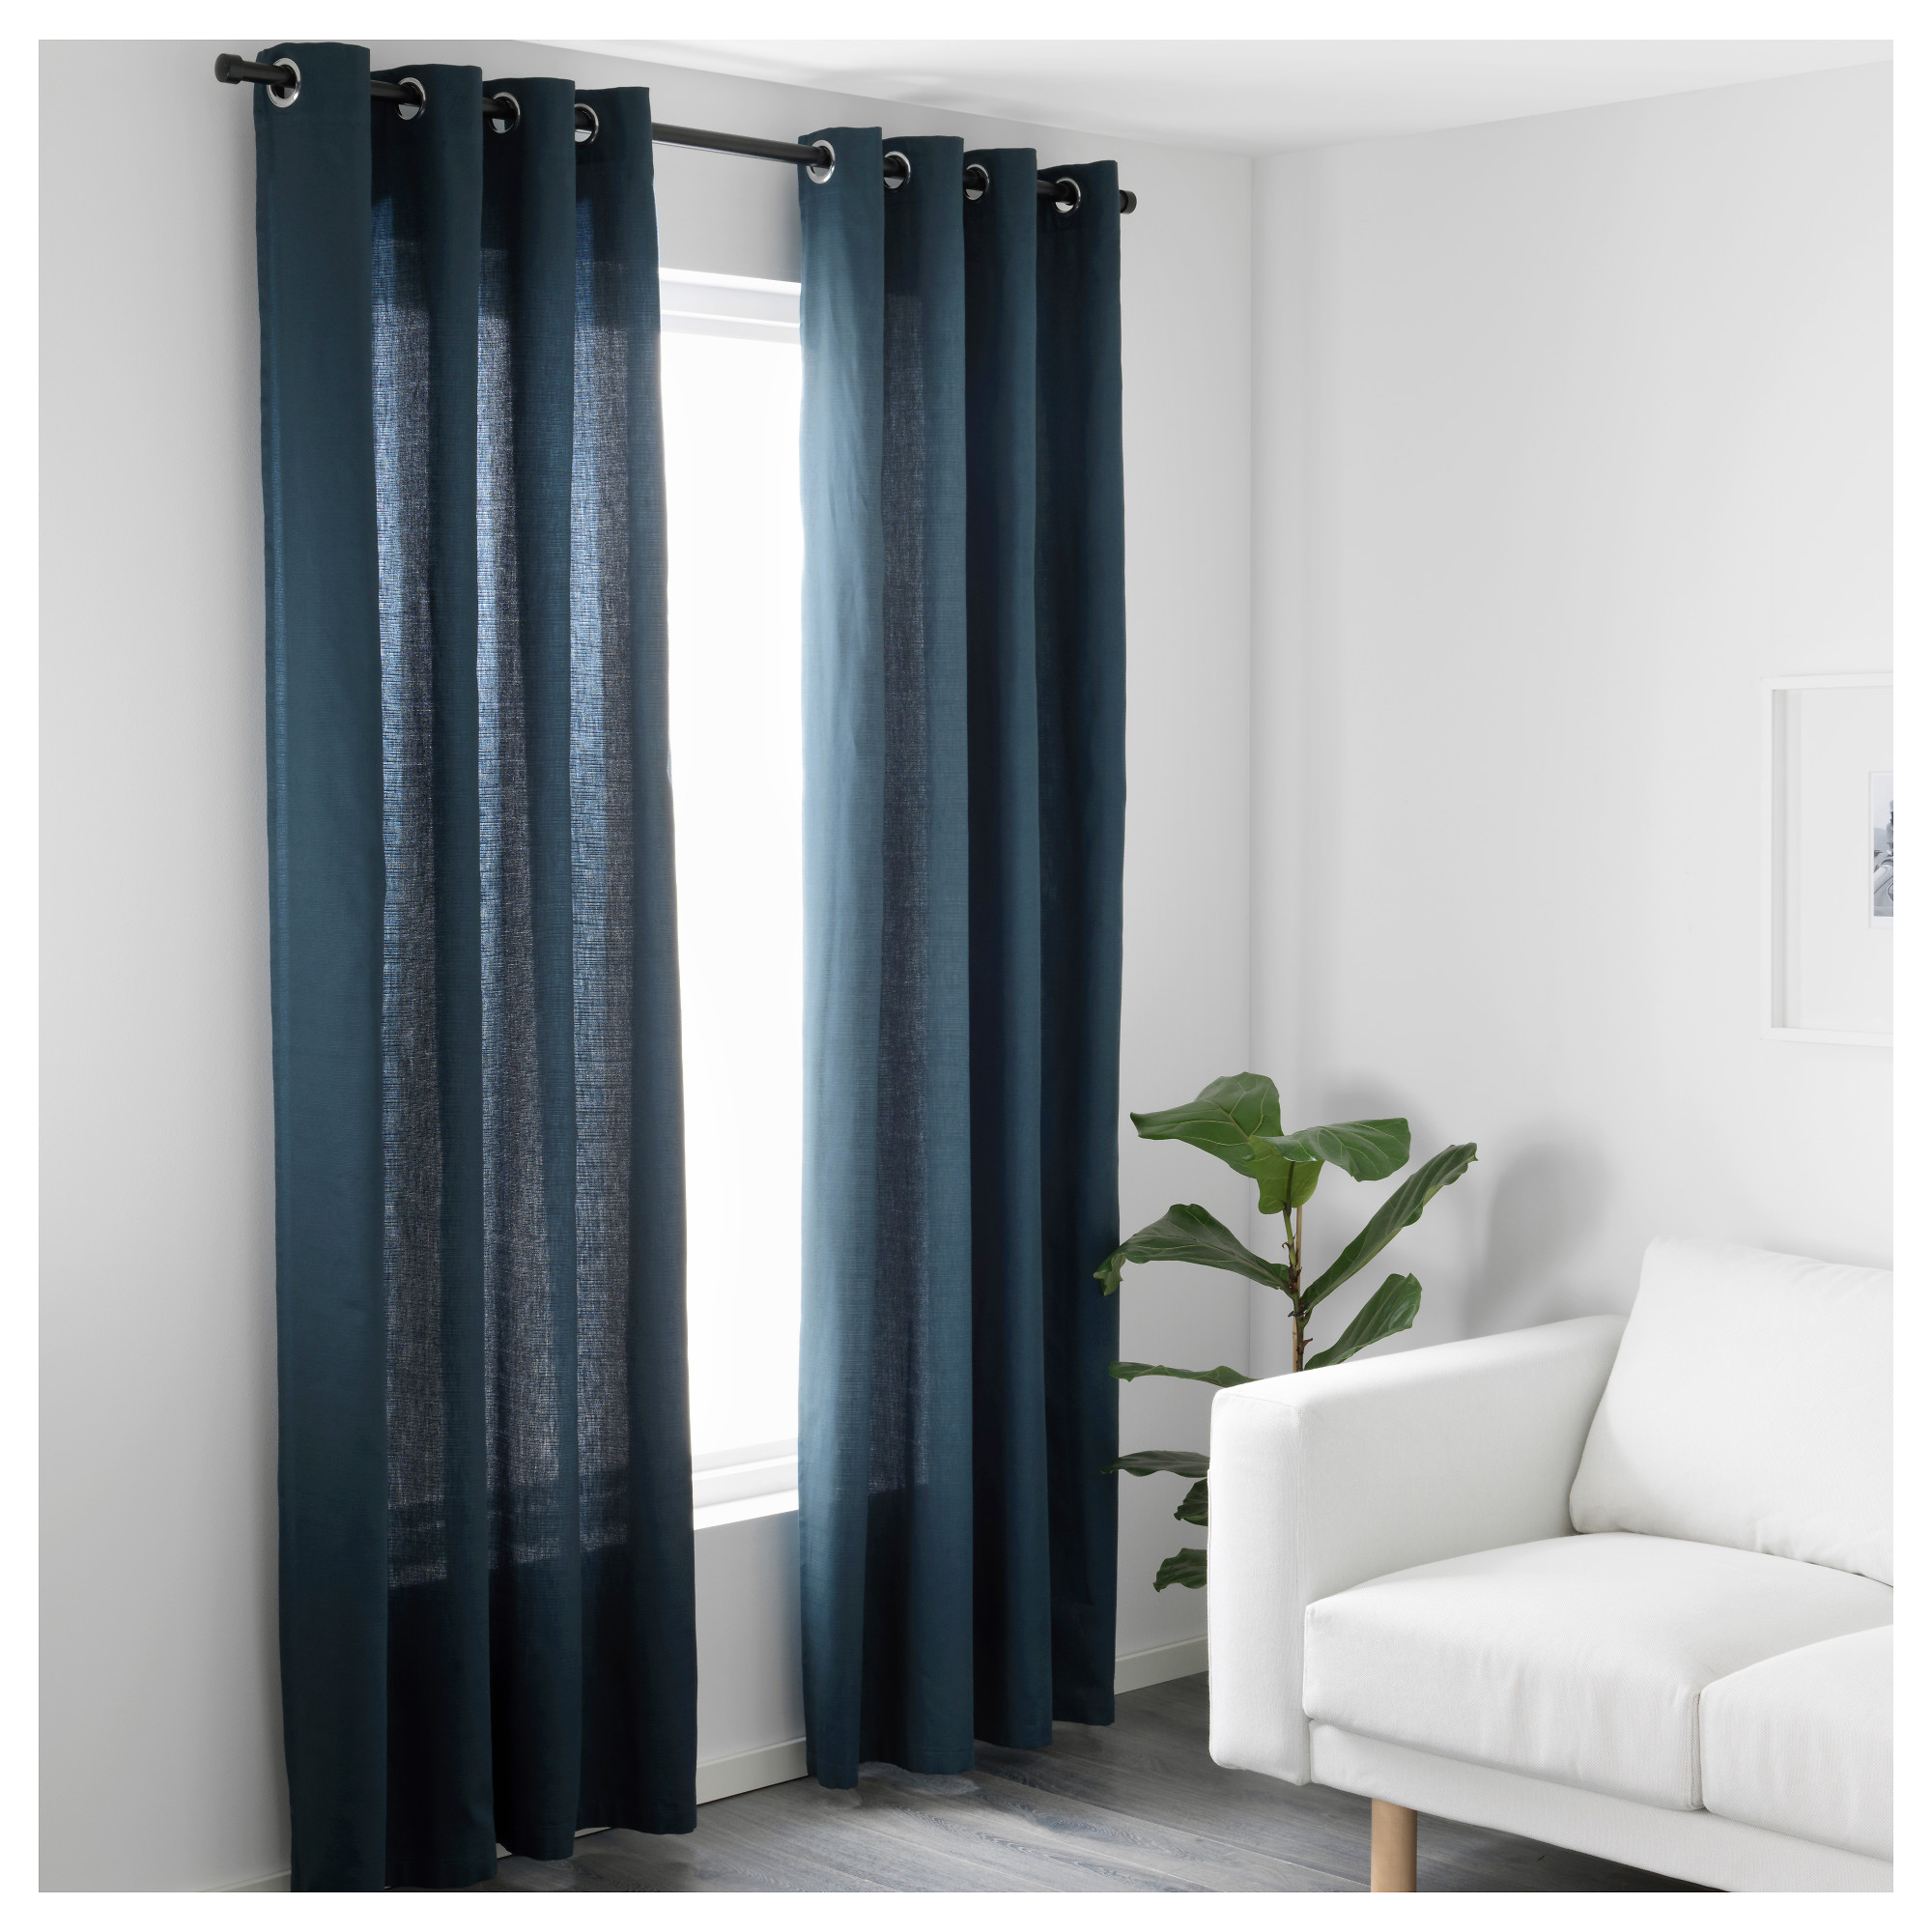 MARIAM Curtains, 1 pair - IKEA